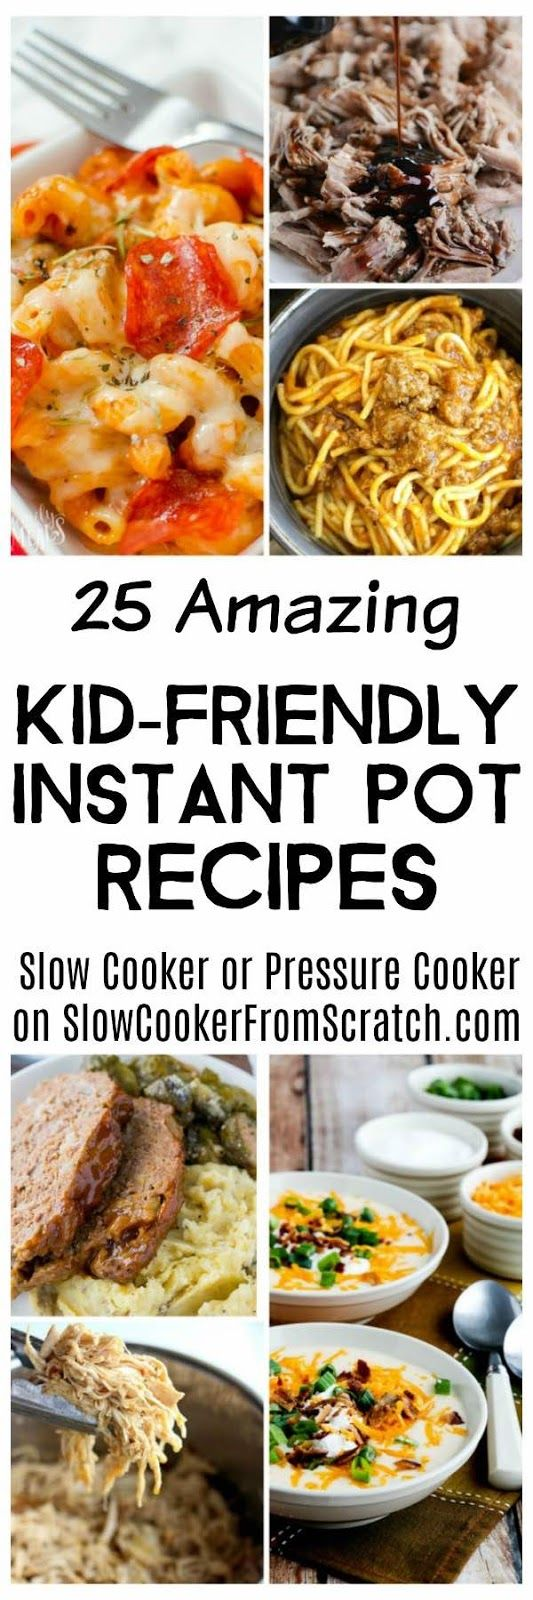 Here are 25 Amazing Kid-Friendly Instant Pot Recipes to help with those Back-to-School dinners you may be needing soon! This round-up is loaded with quick and easy Instant Pot (or Pressure Cooker) dinner ideas, plus there's a link to our collection of Kid-Friendly Slow Cooker Recipes if you prefer that method. [found on Slow Cooker or Pressure Cooker]